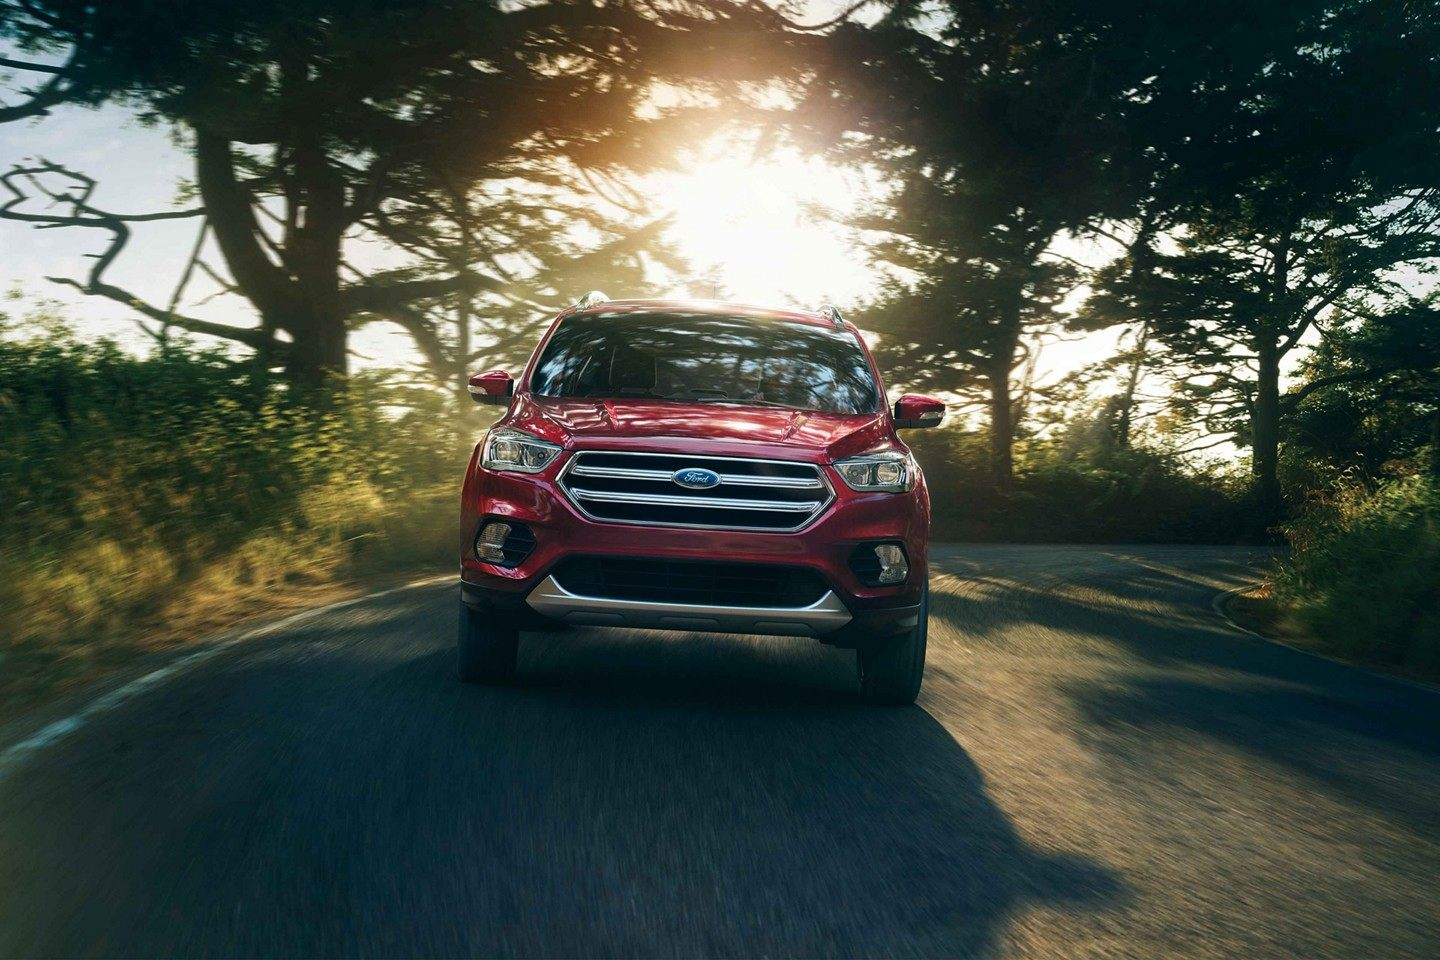 2019 Ford Escape Red Exterior Front View Picture